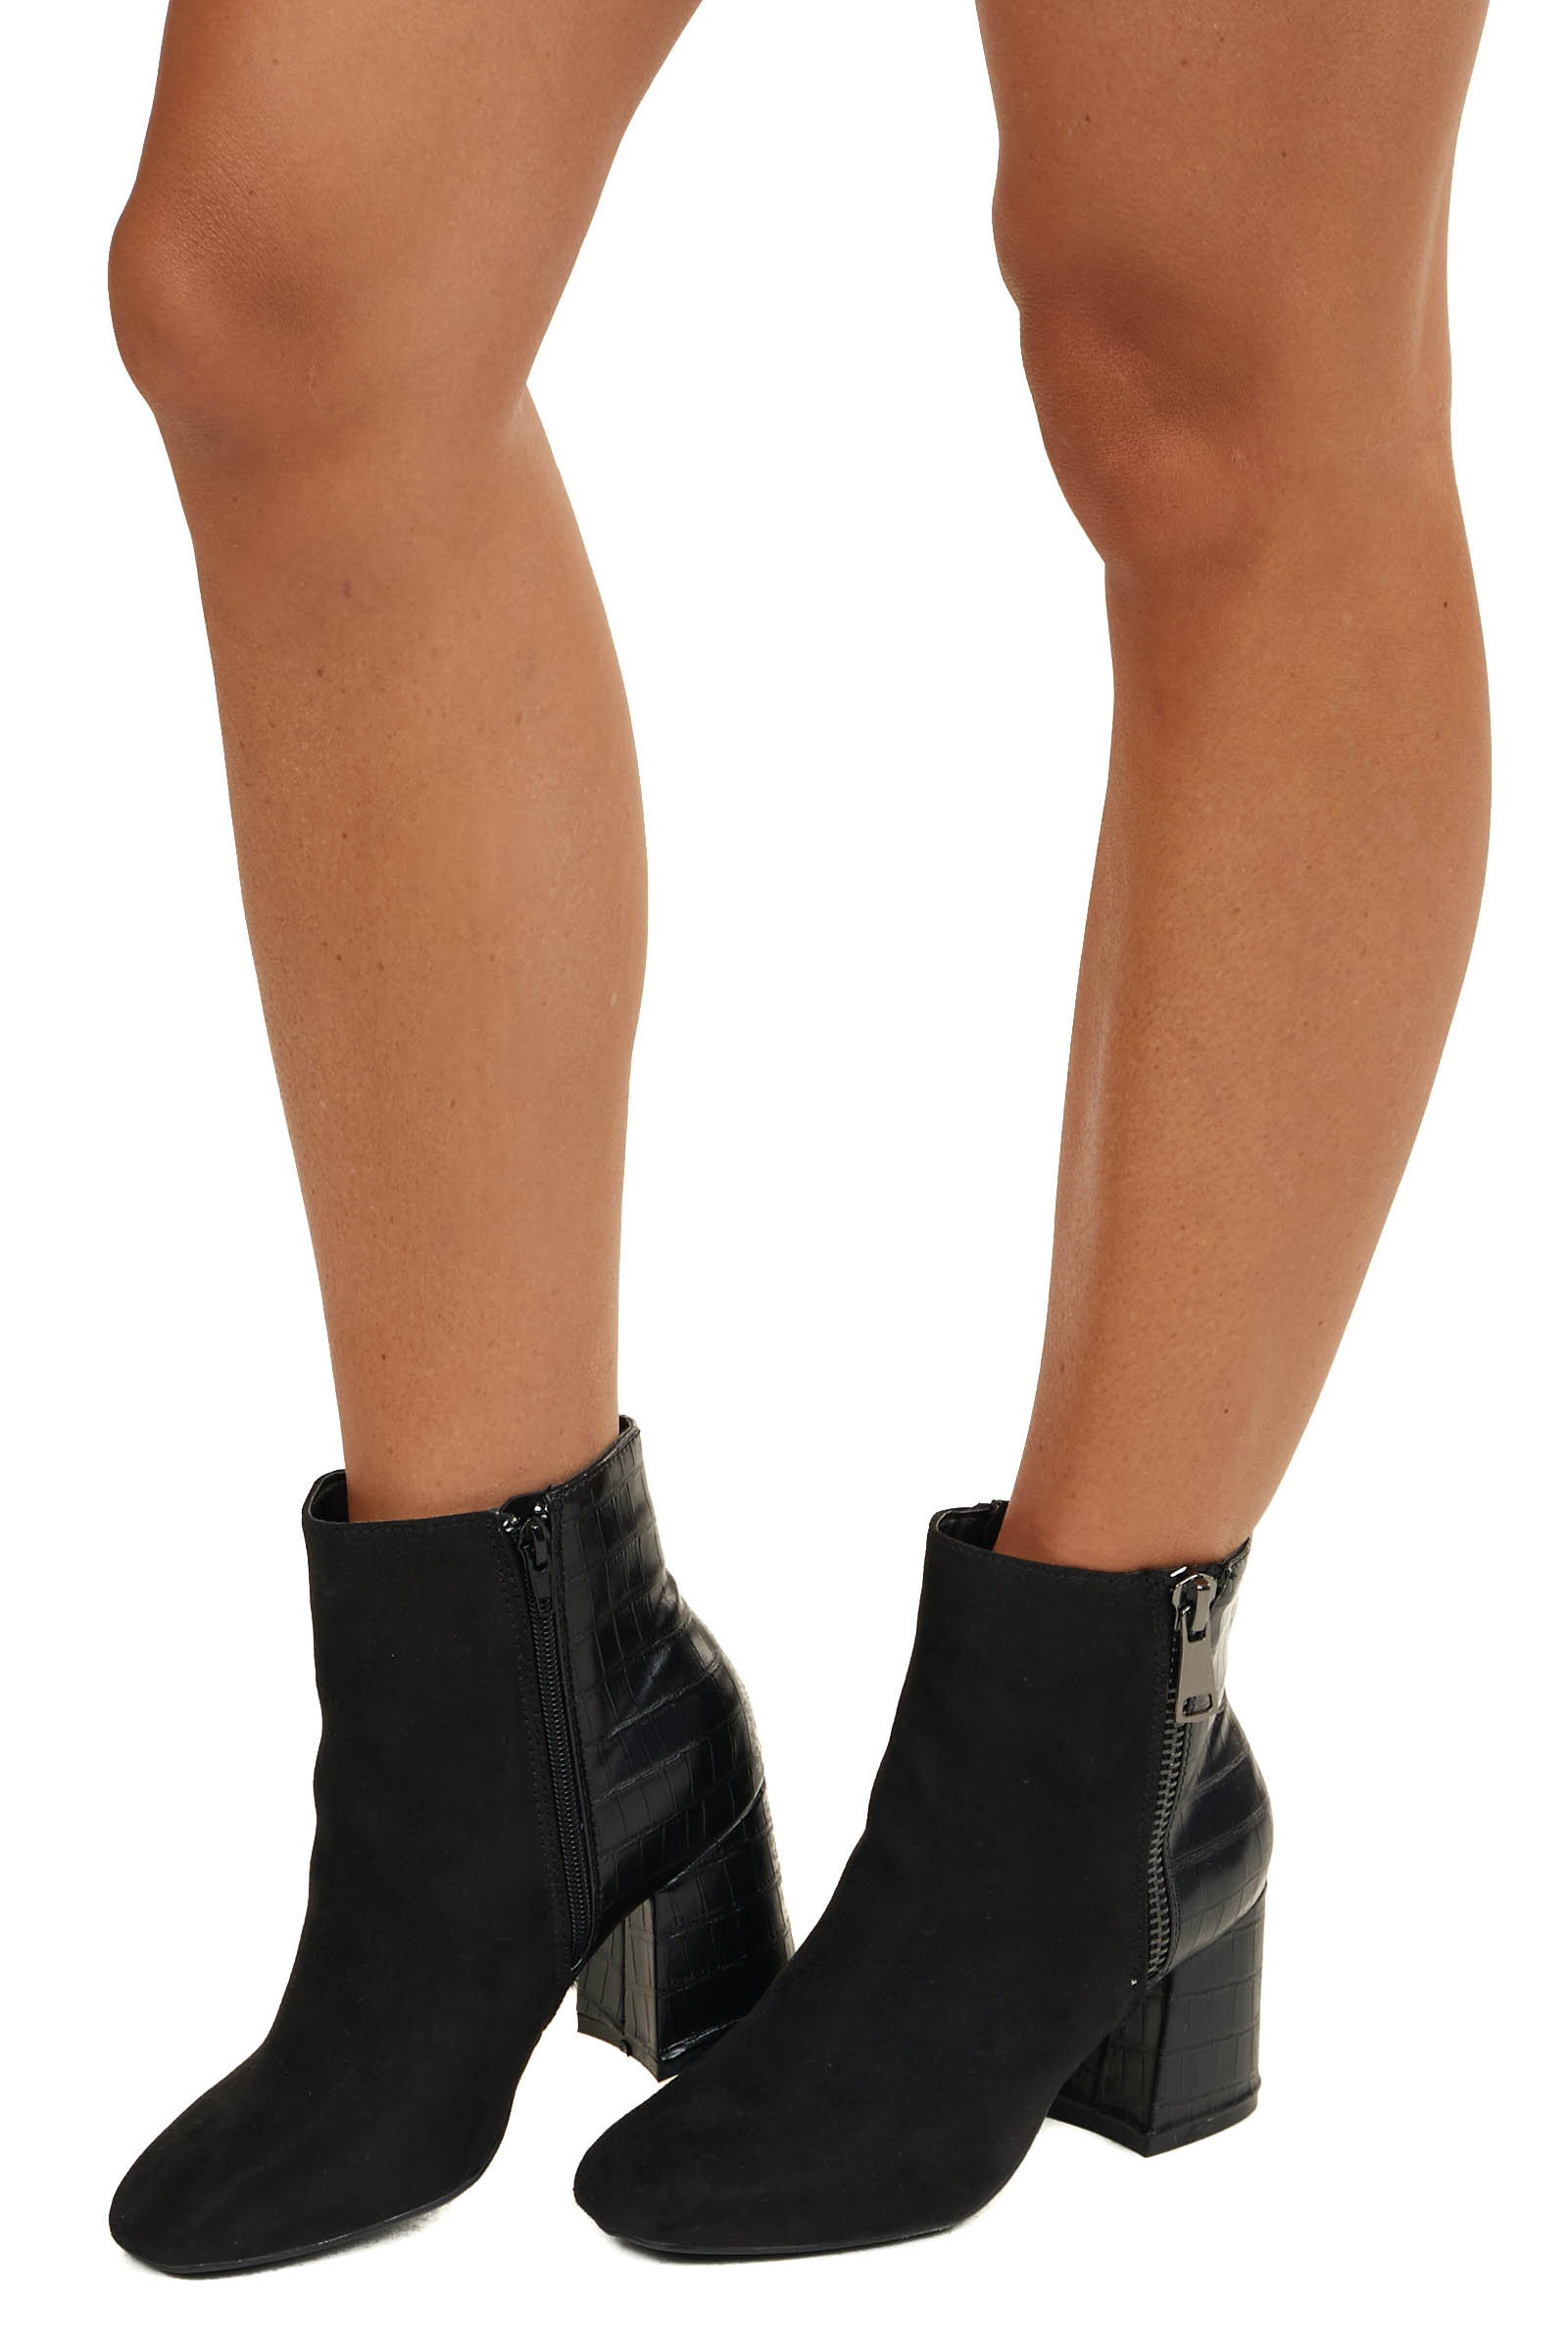 Black Faux Suede and Textured Leather High Heel Booties